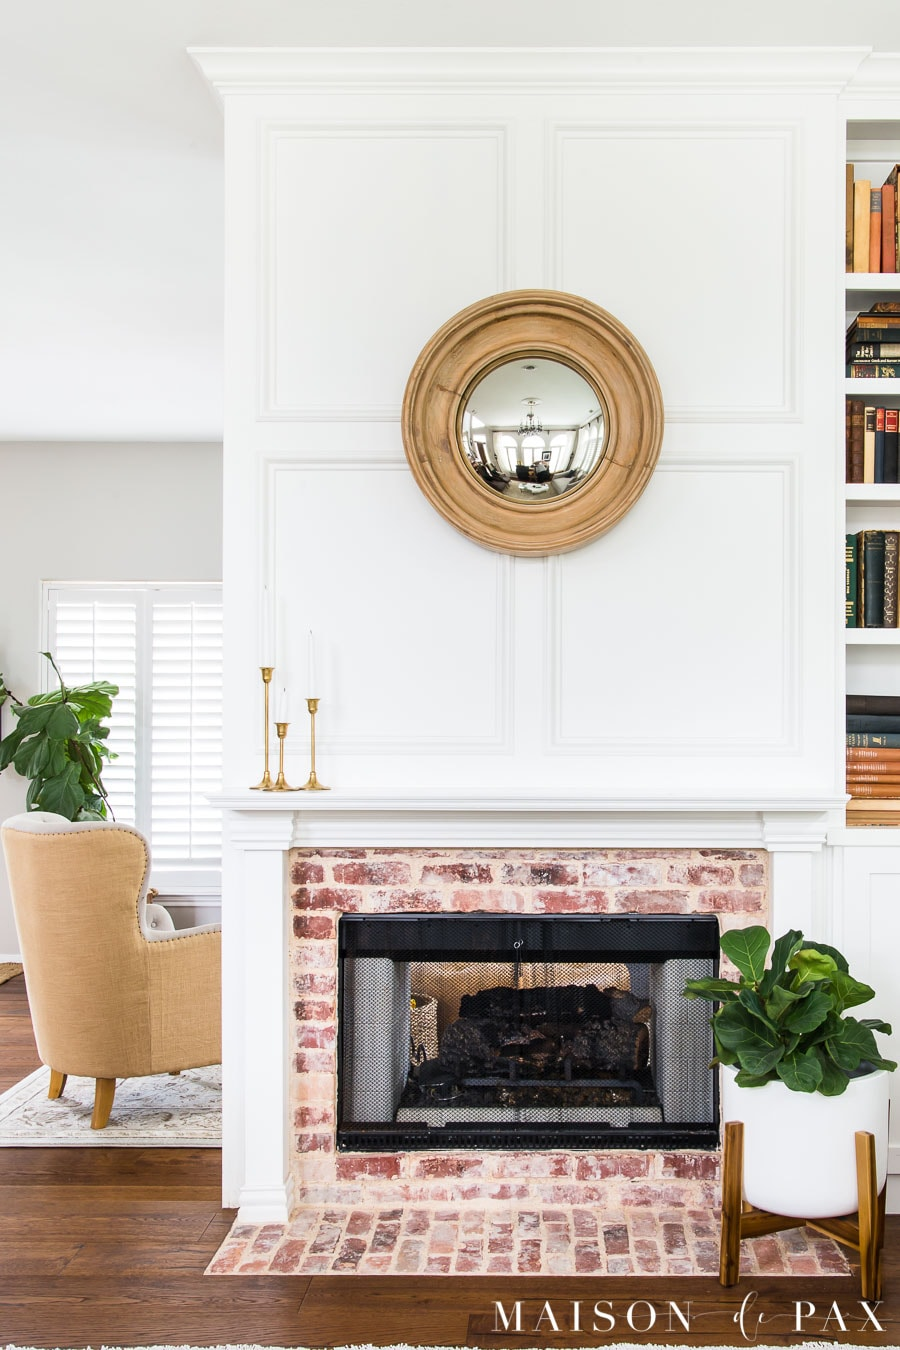 fiddle leaf fig plant in pot by fireplace and fiddle leaf fig tree beyond | Maison de Pax